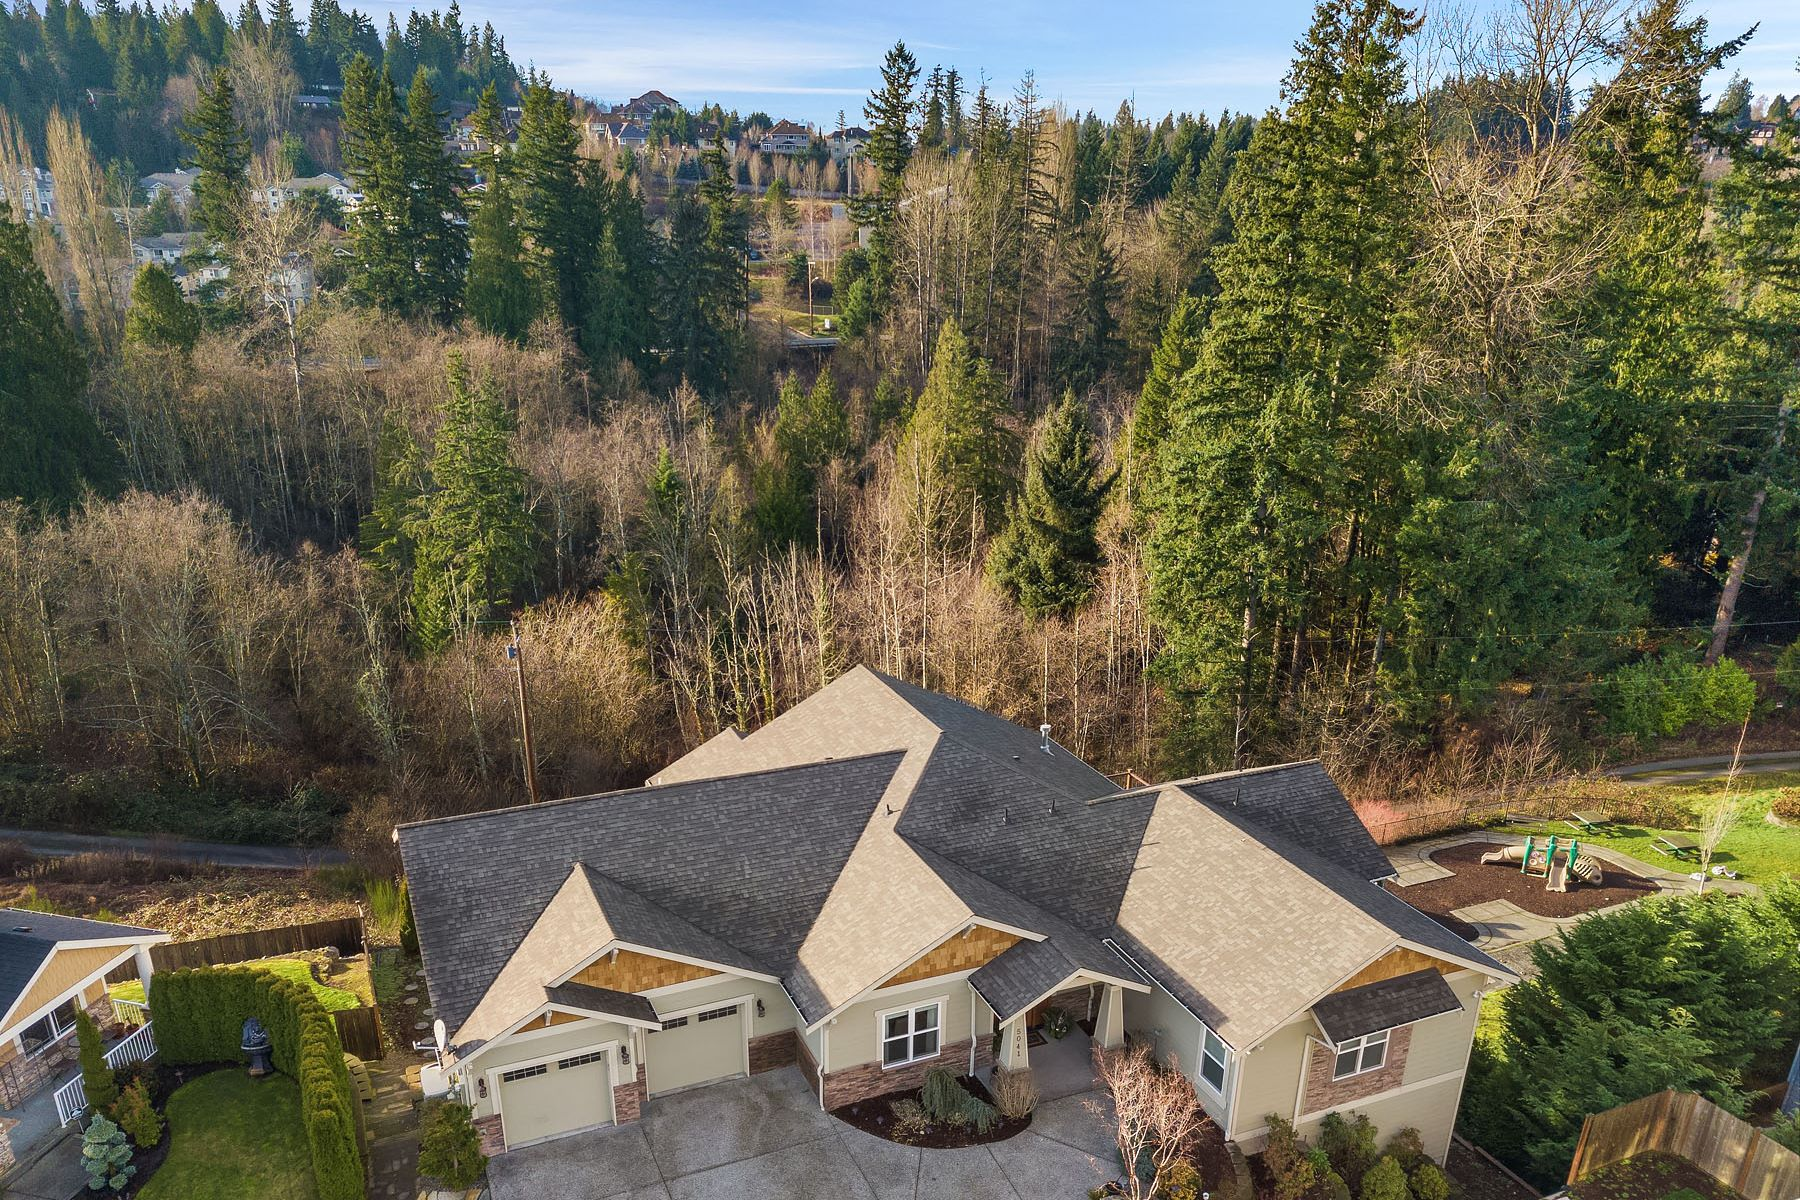 Single Family Homes for Sale at Exquisite Sammamish Home 5041 240th Place SE Sammamish, Washington 98029 United States